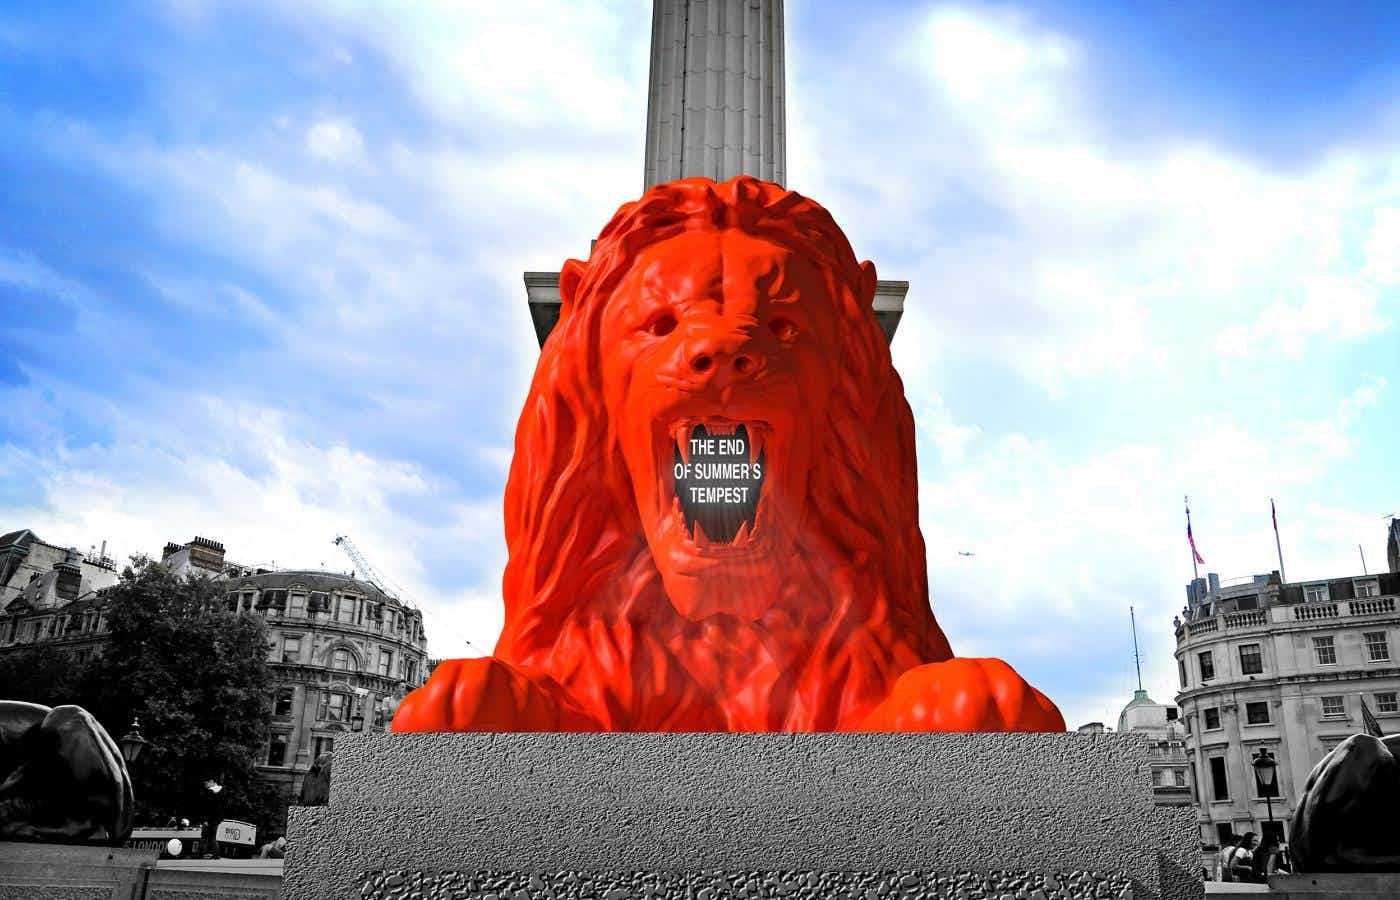 The Trafalgar Square lions are getting a new friend who'll roar poetry at you